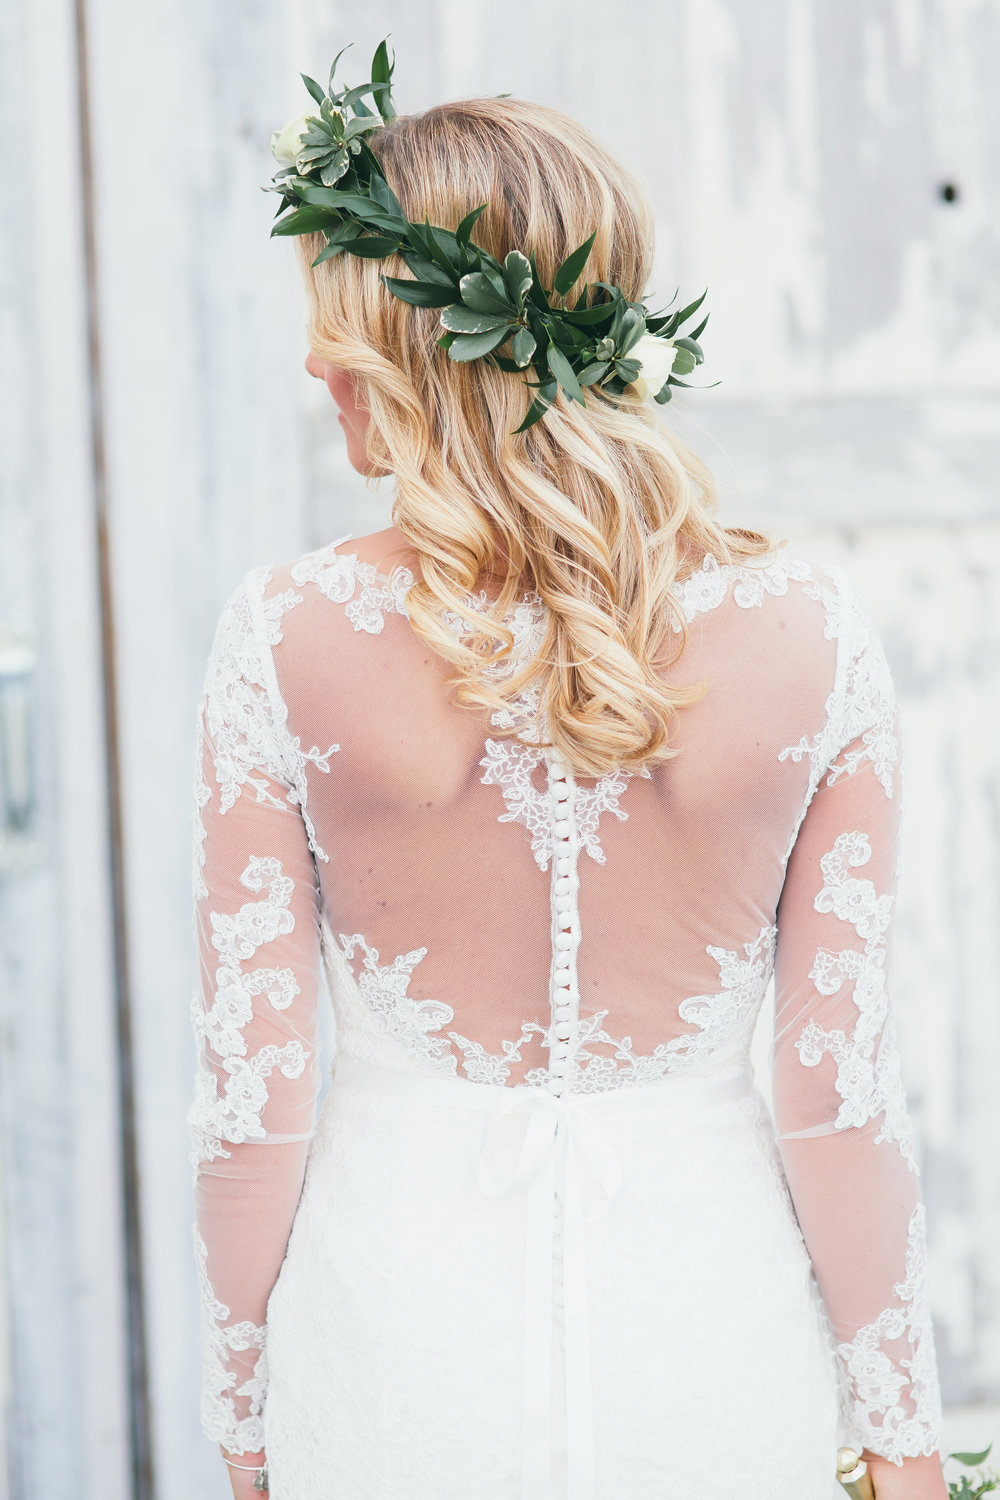 Dress - How To Find The Perfect Dress - Andie Avery Photography - Dress Details.jpg